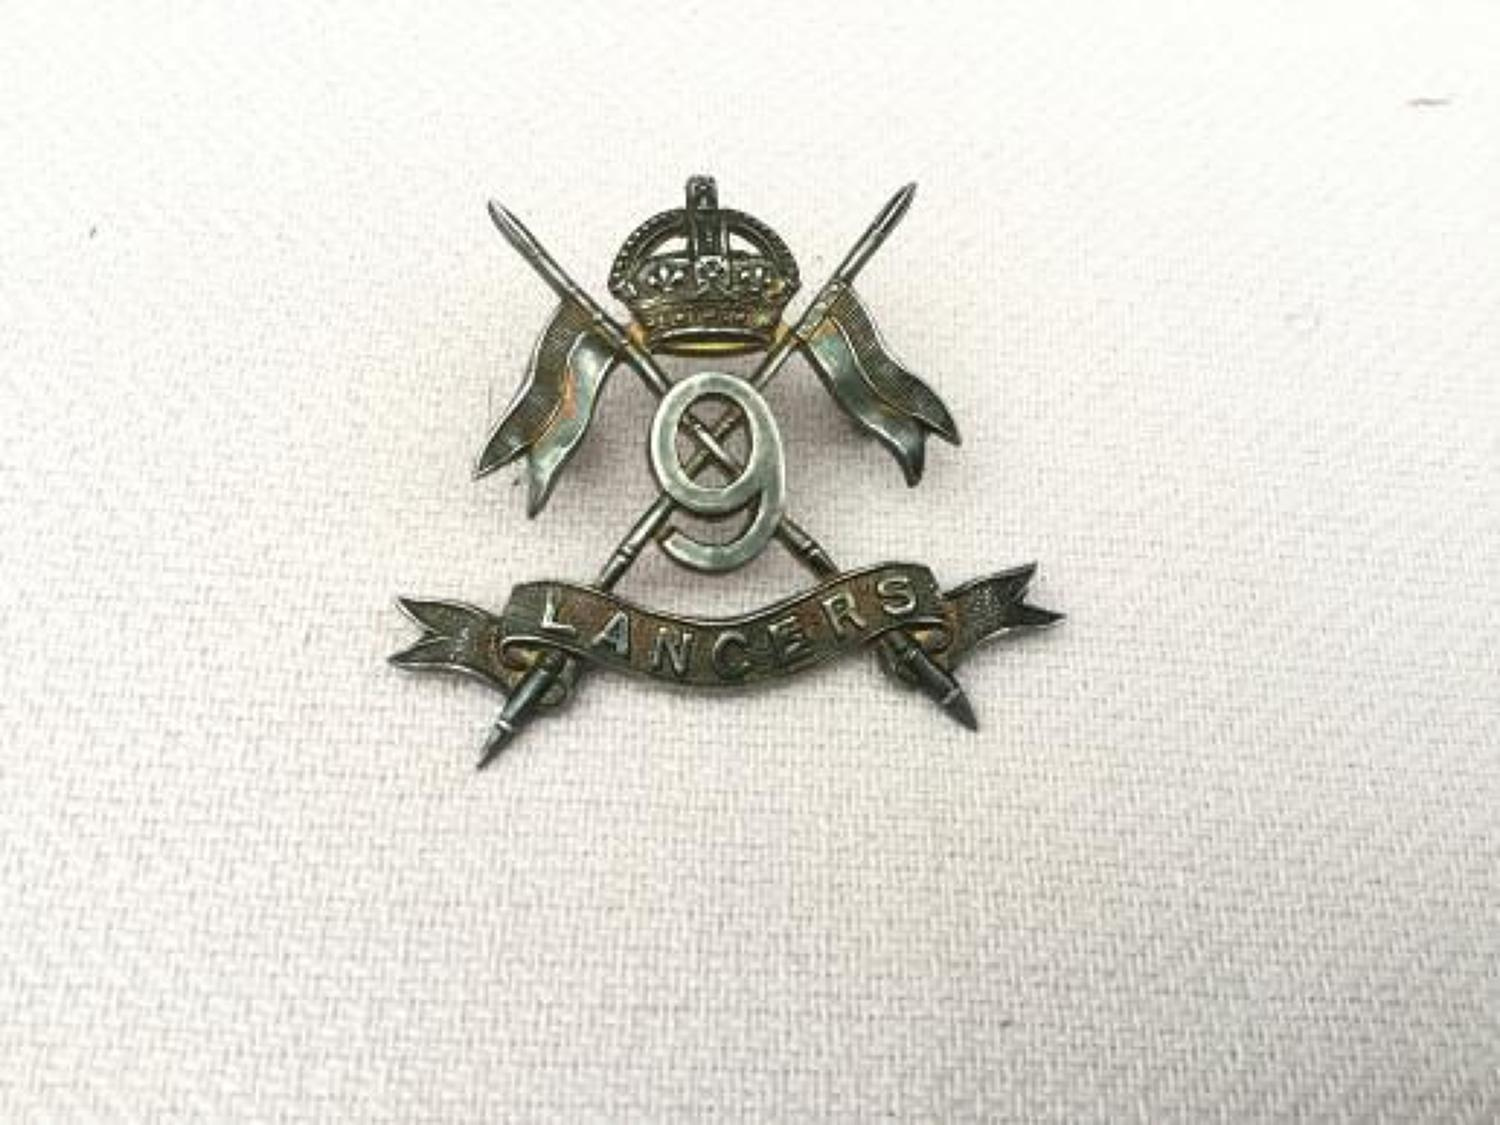 9th Lancers Officers Silver Hallmarked Cap Insignia.